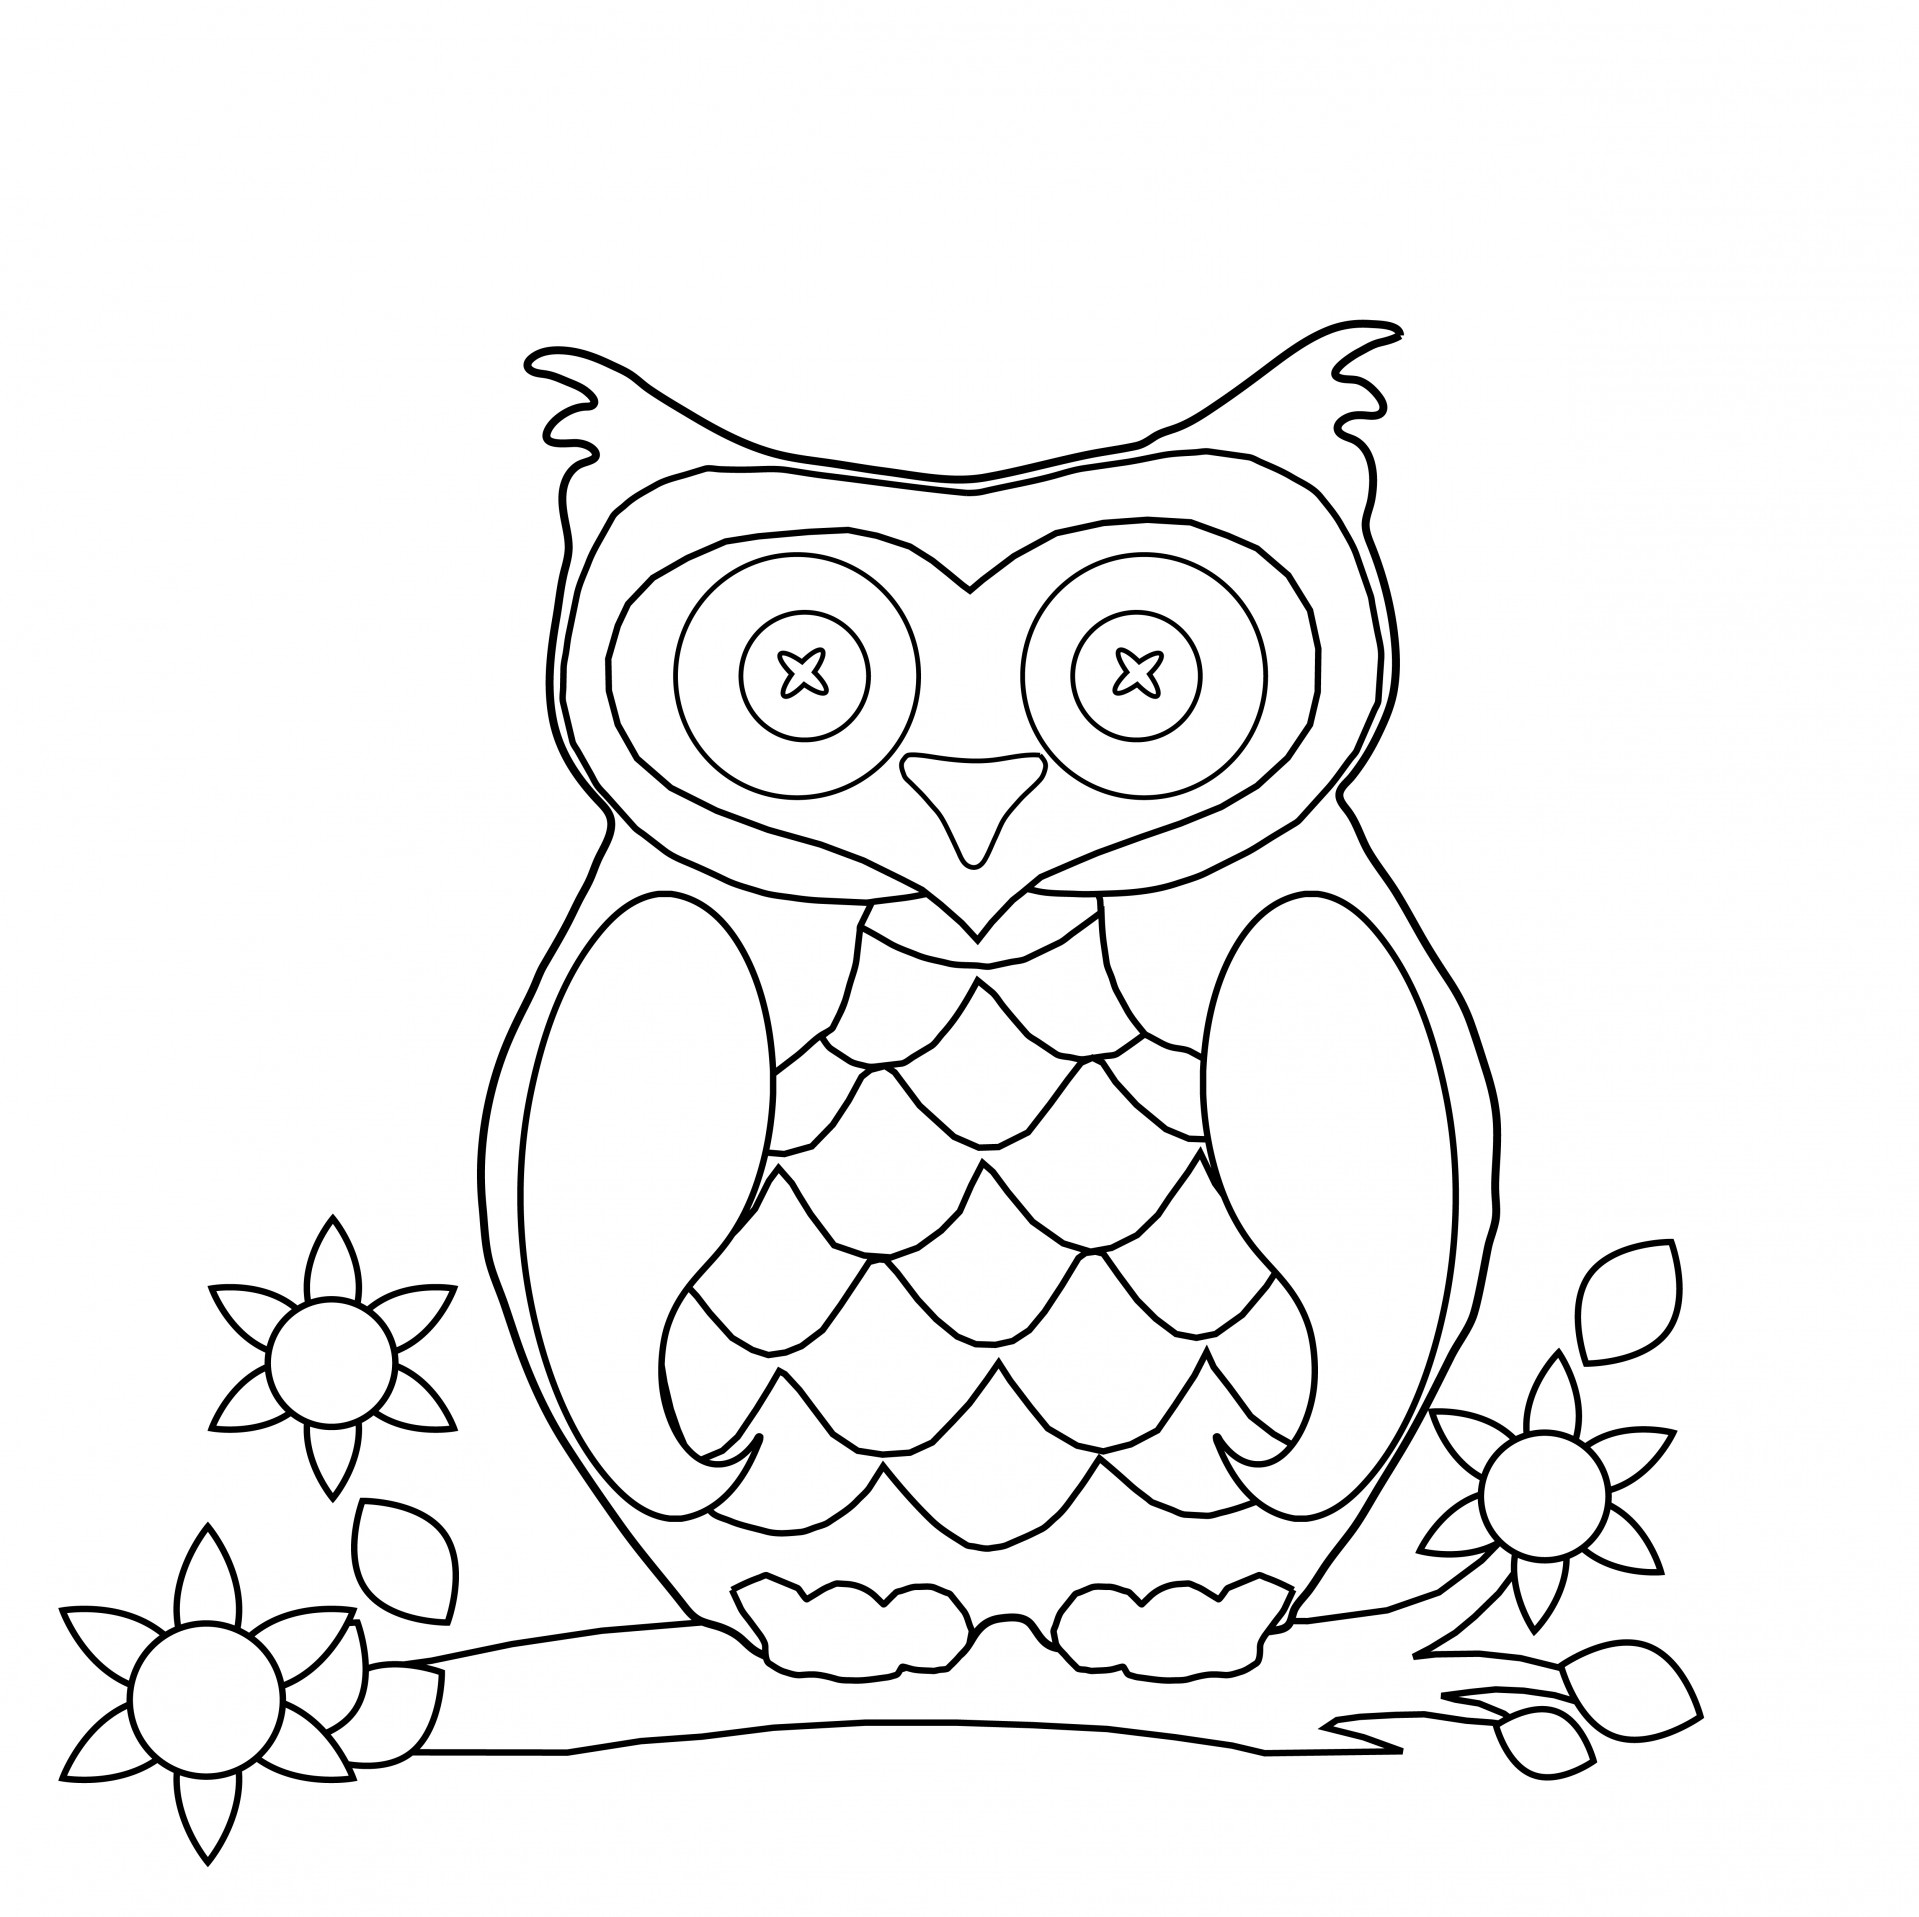 coloring pages for print free printable cinderella activity sheets and coloring pages for coloring print